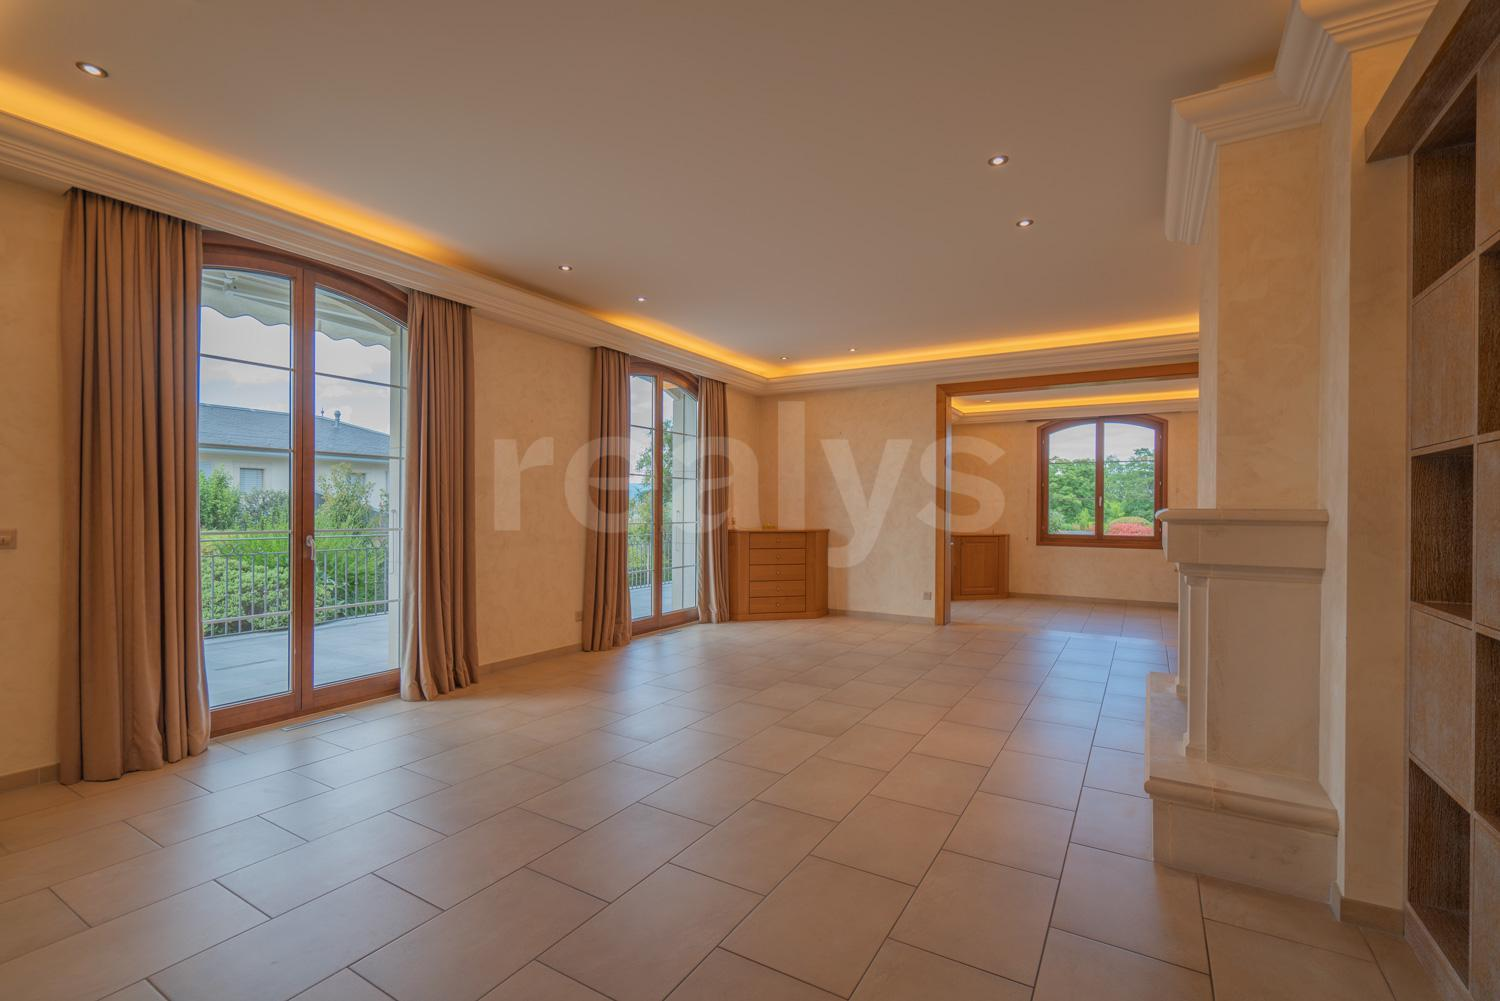 PrivaliaUnique : Exceptional villa with swimming pool on the heights of Cologny